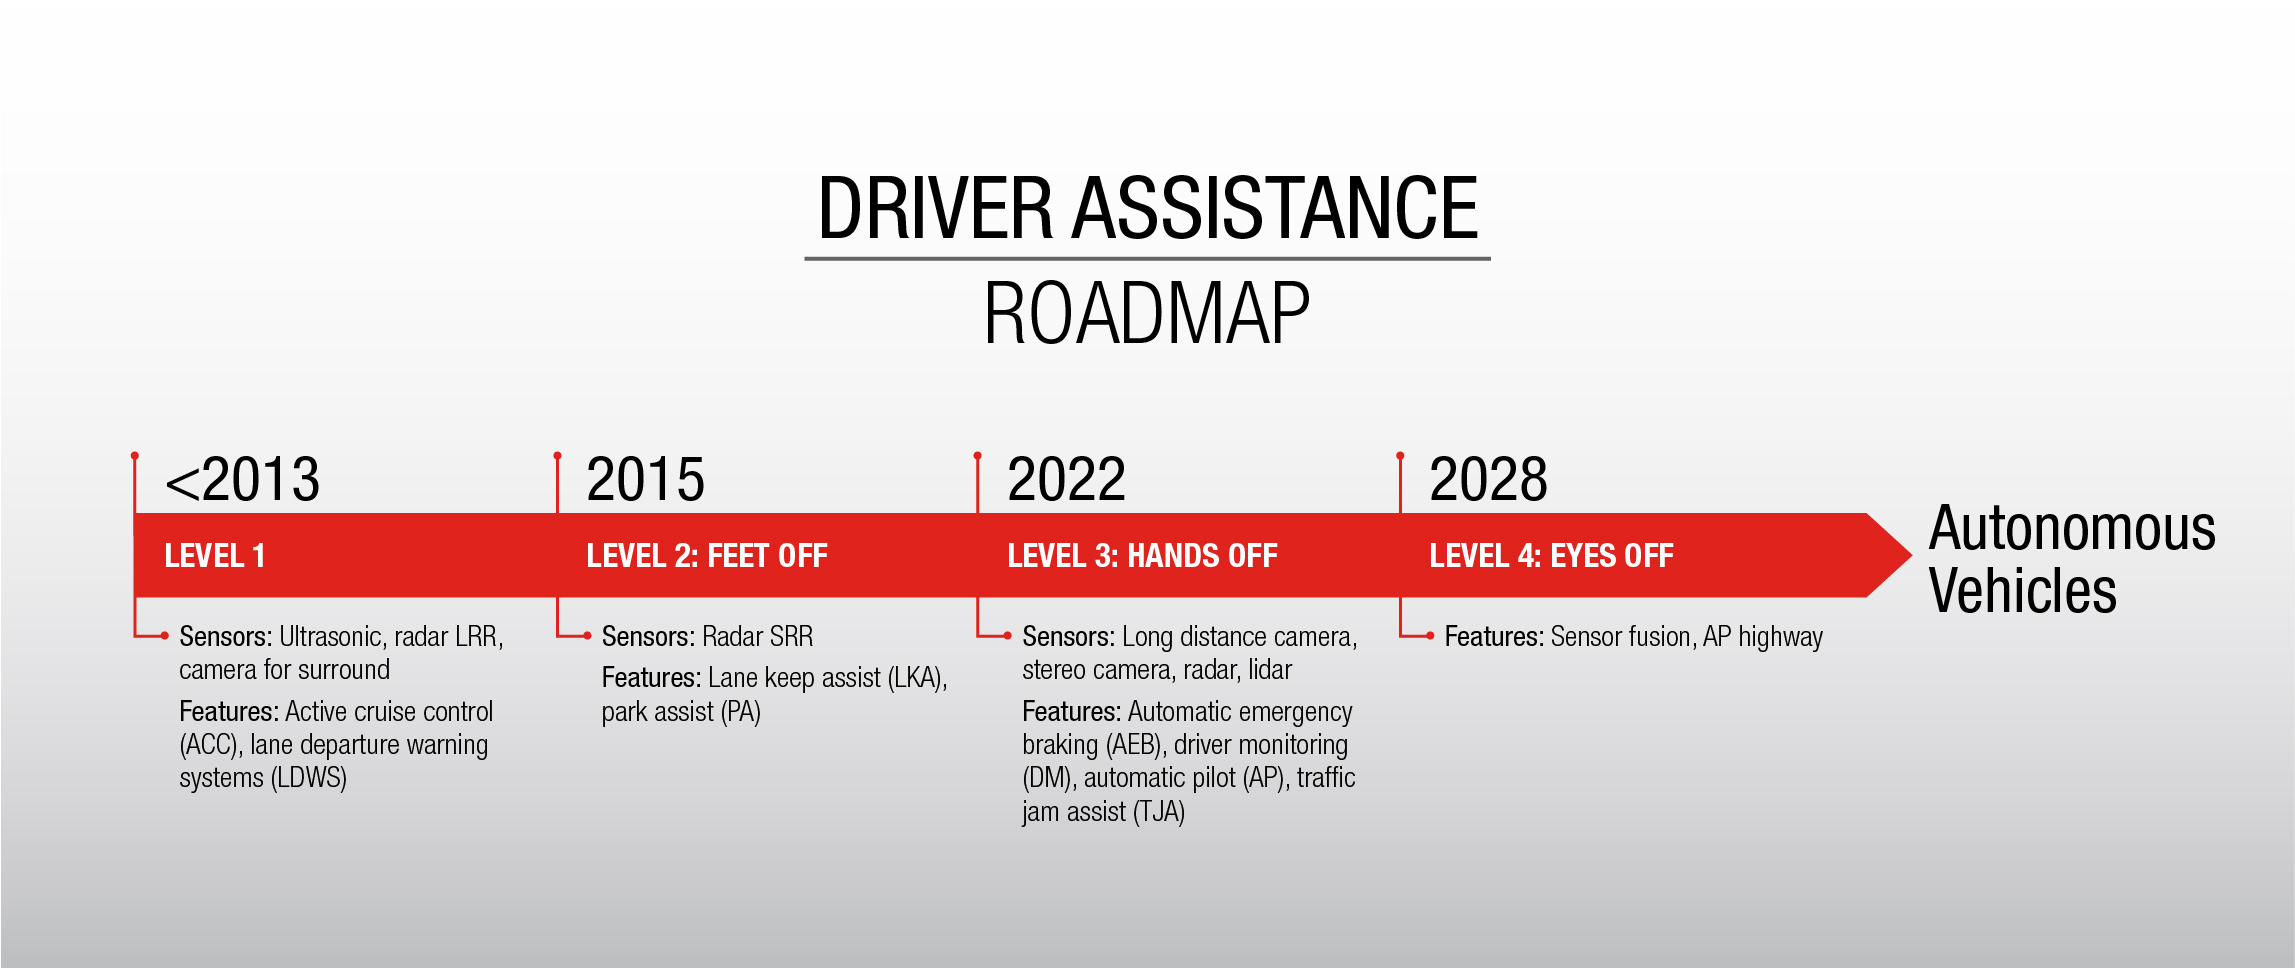 Driver assistance roadmap-02